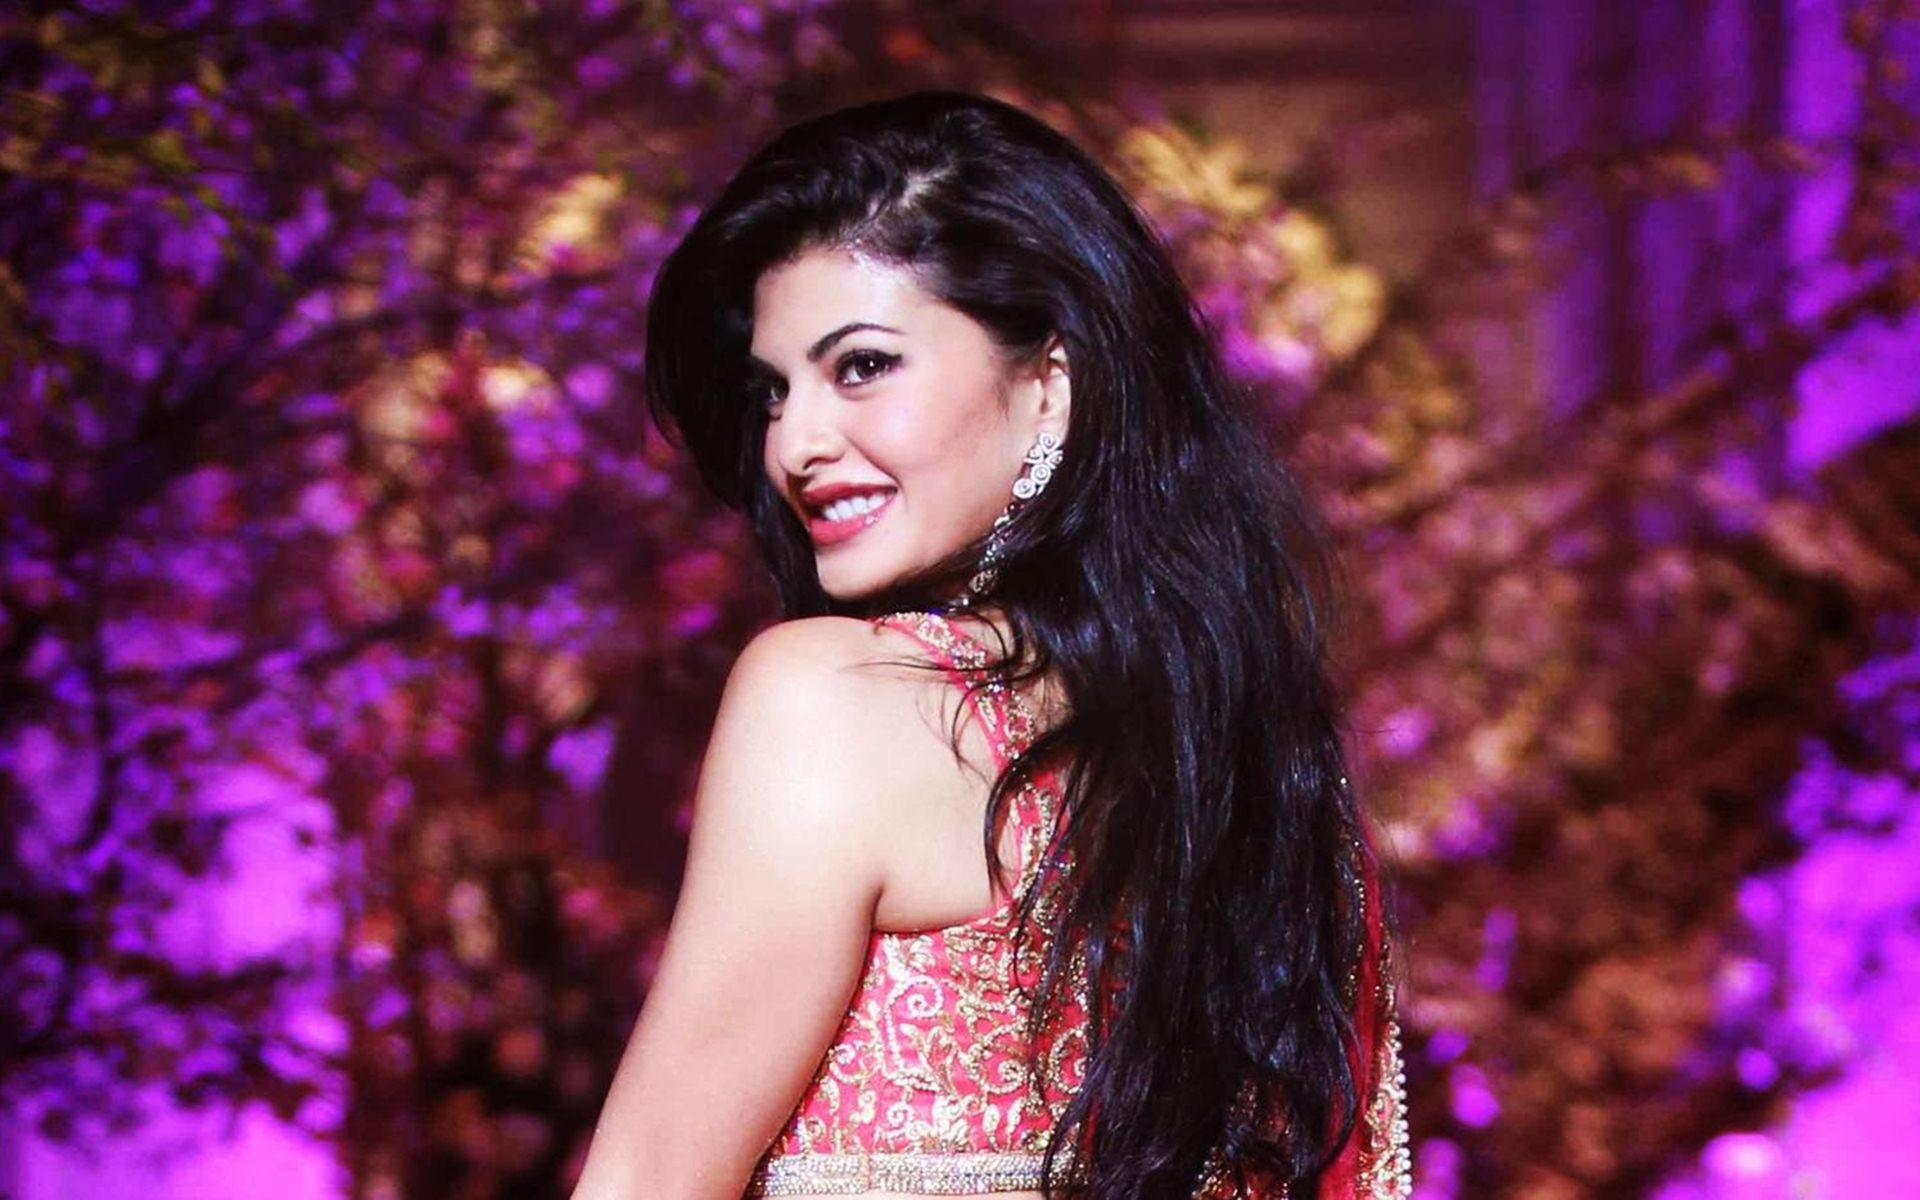 jacqueline fernandez images jackie hd wallpaper and background